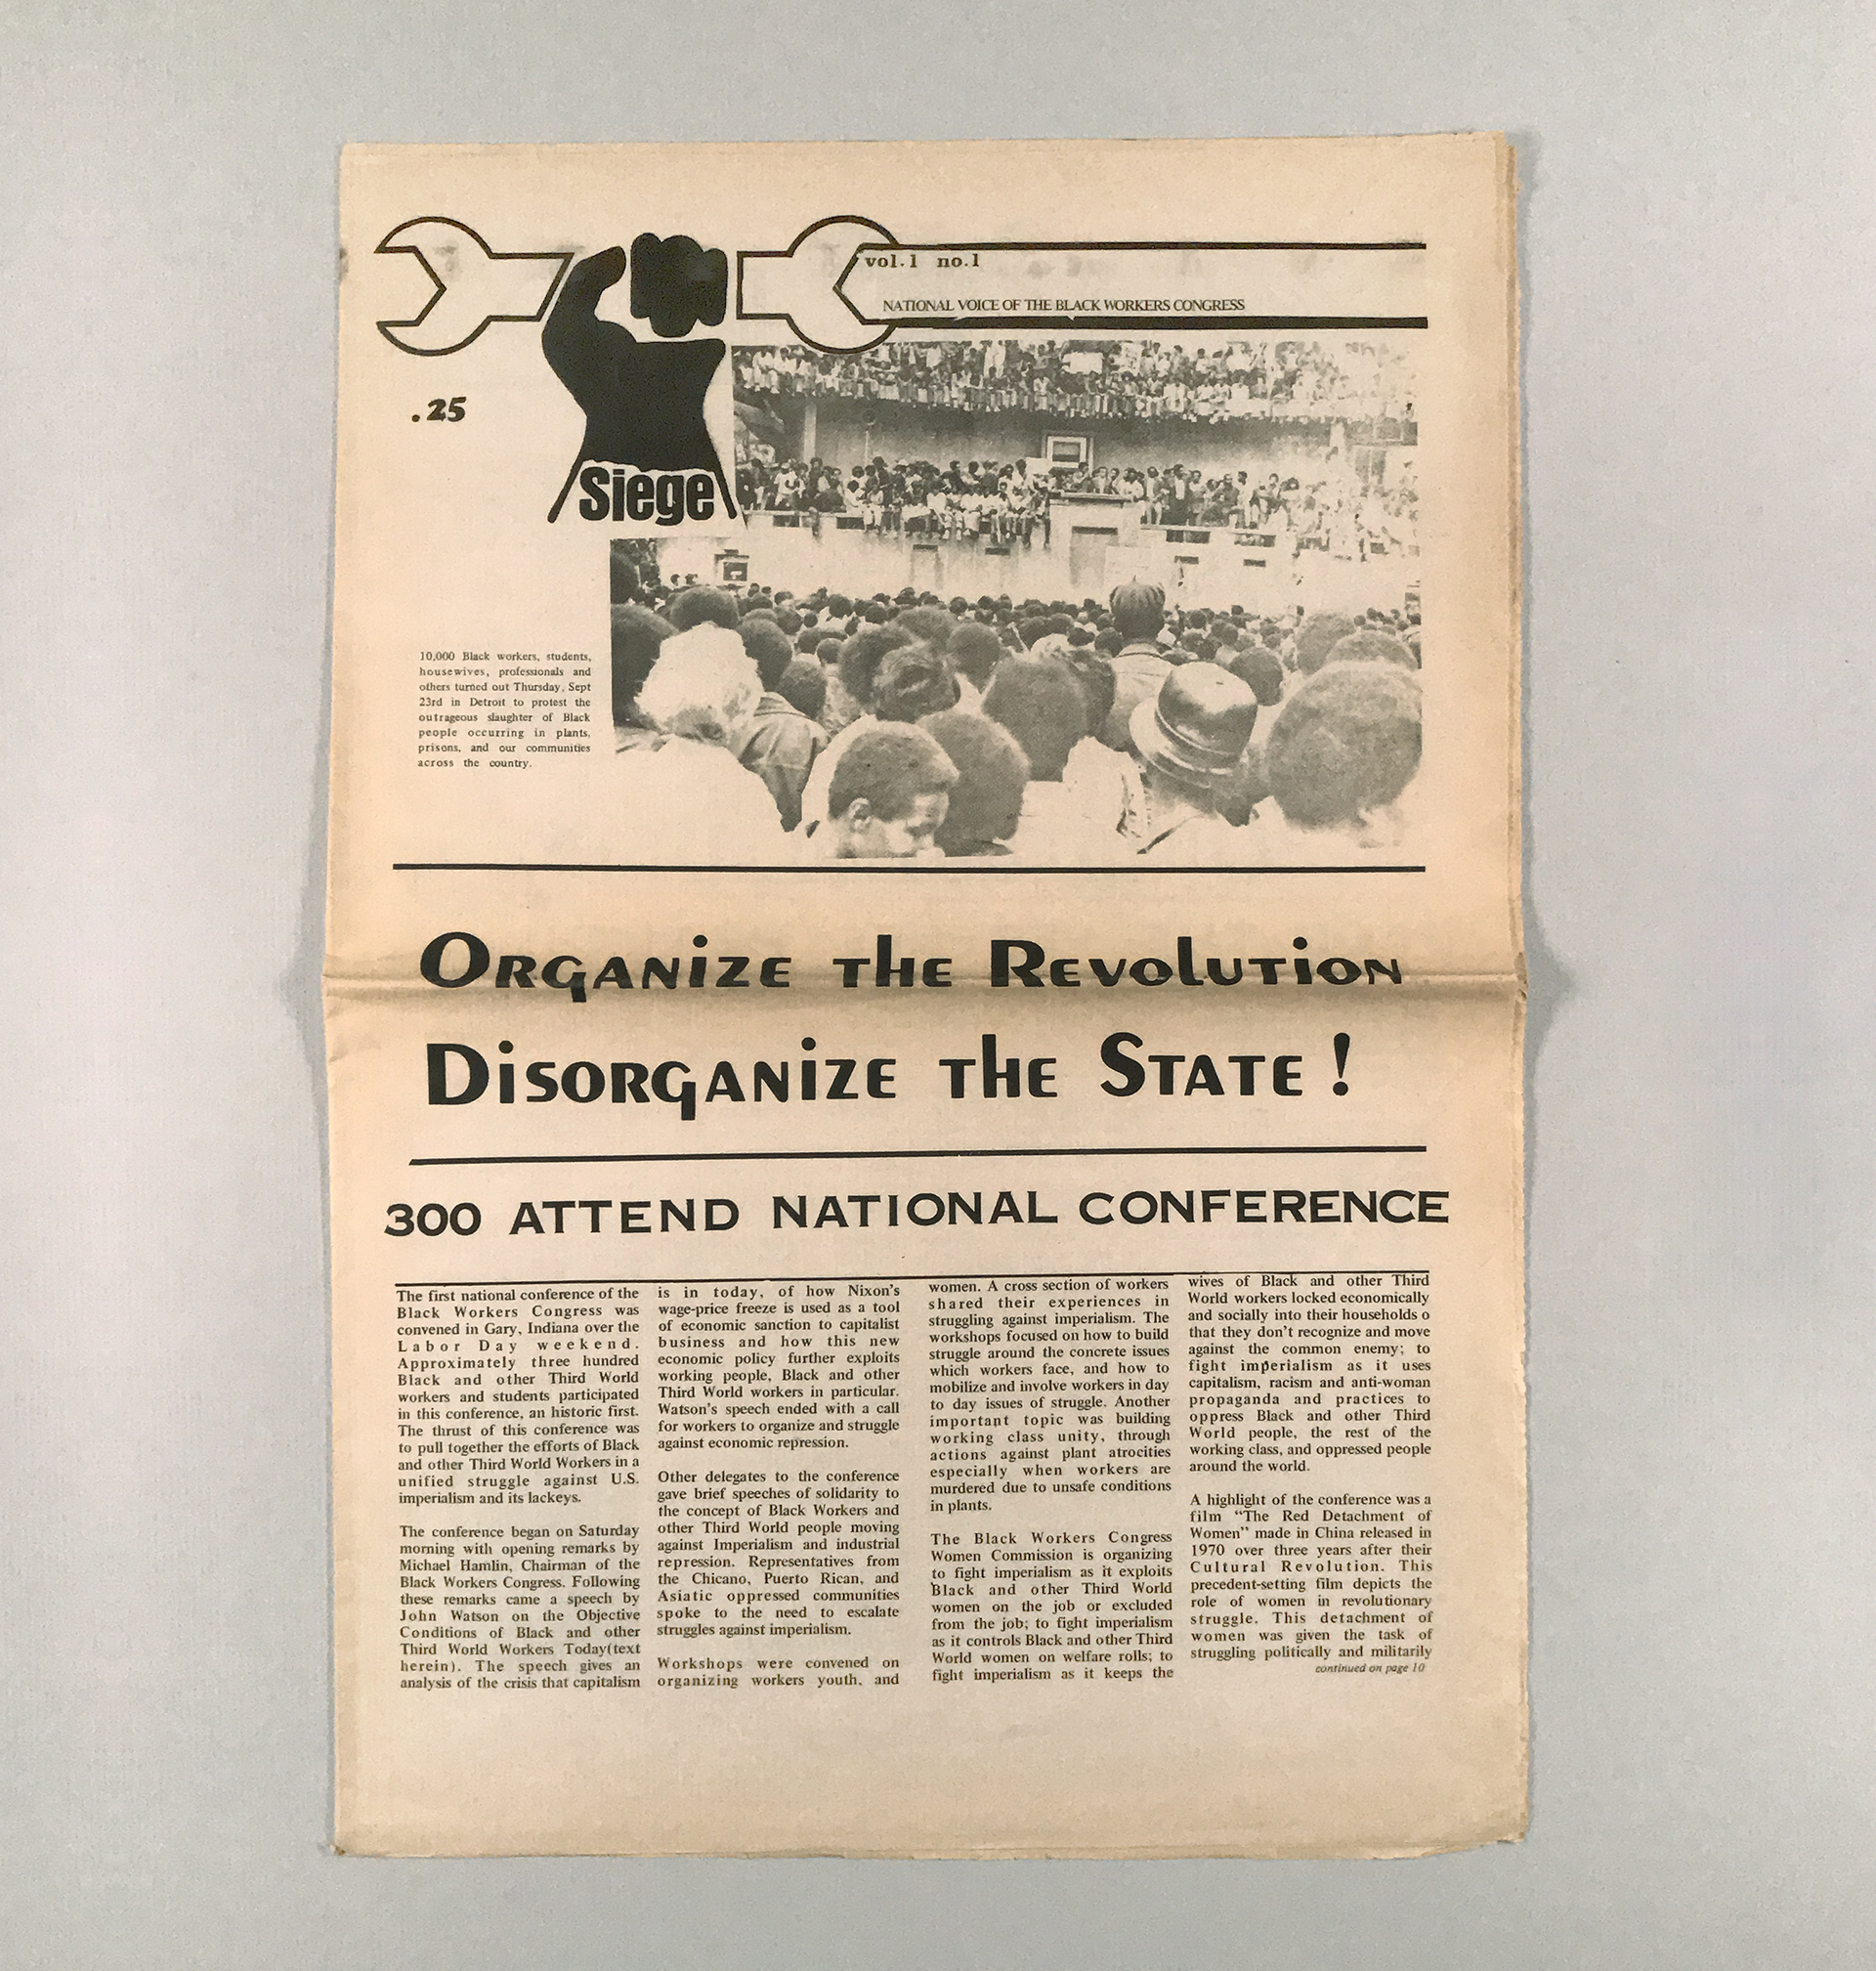 Siege: National Voice of the Black Workers Congress Vol. 1 No. 1 (1971)